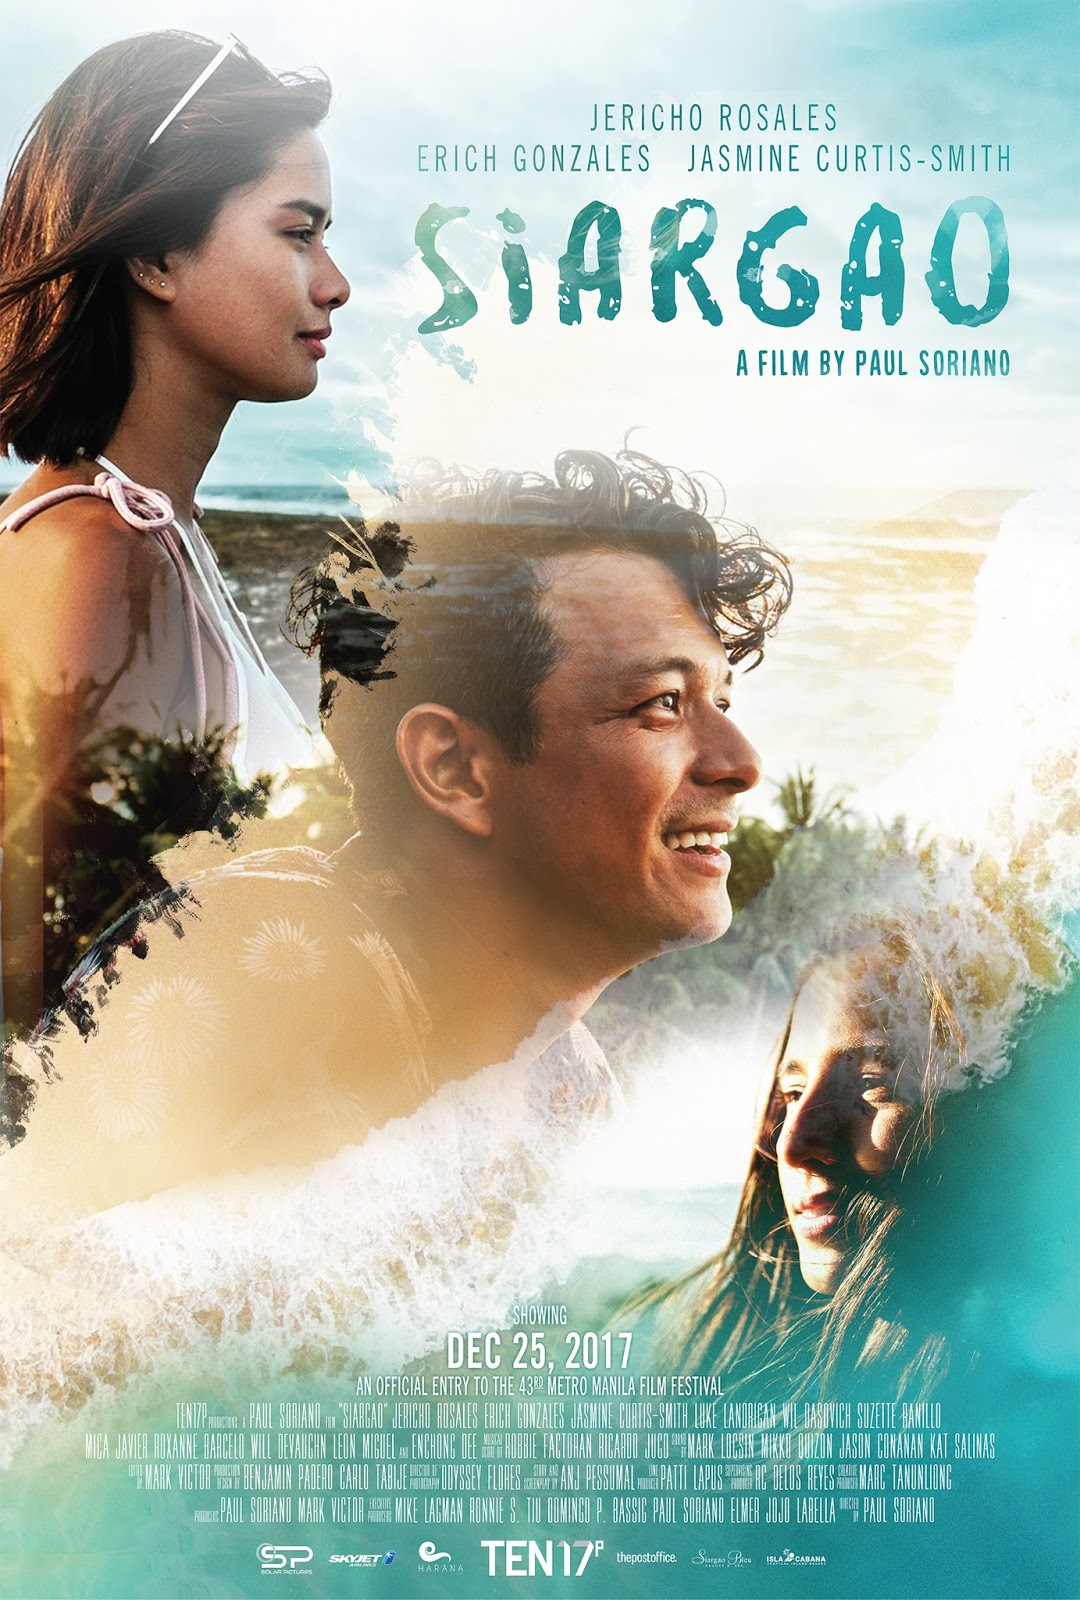 an analysis of the philippine romance film siargao by anj pessumal Drama writers: anjeli pessumal (story) (as anj pessumal), anjeli pessumal ( screenplay) (as anj pessumal) trivia participated in the mmff ( metro manila film festival ) see more.